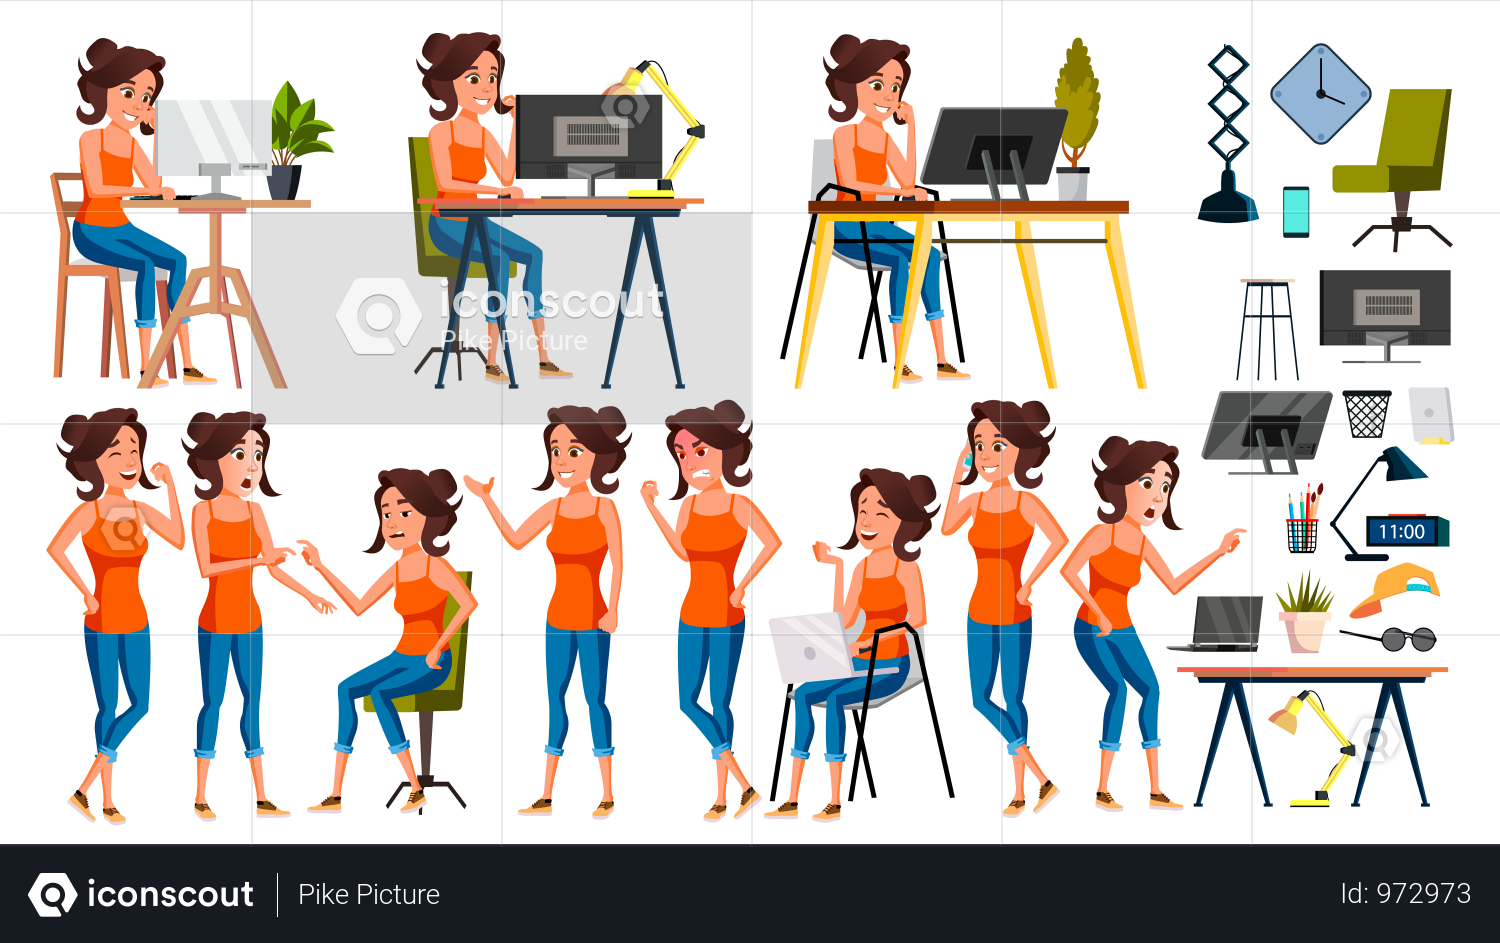 Premium Office Environment Illustration Download In Png Vector Format Business Illustration Business Women Vector